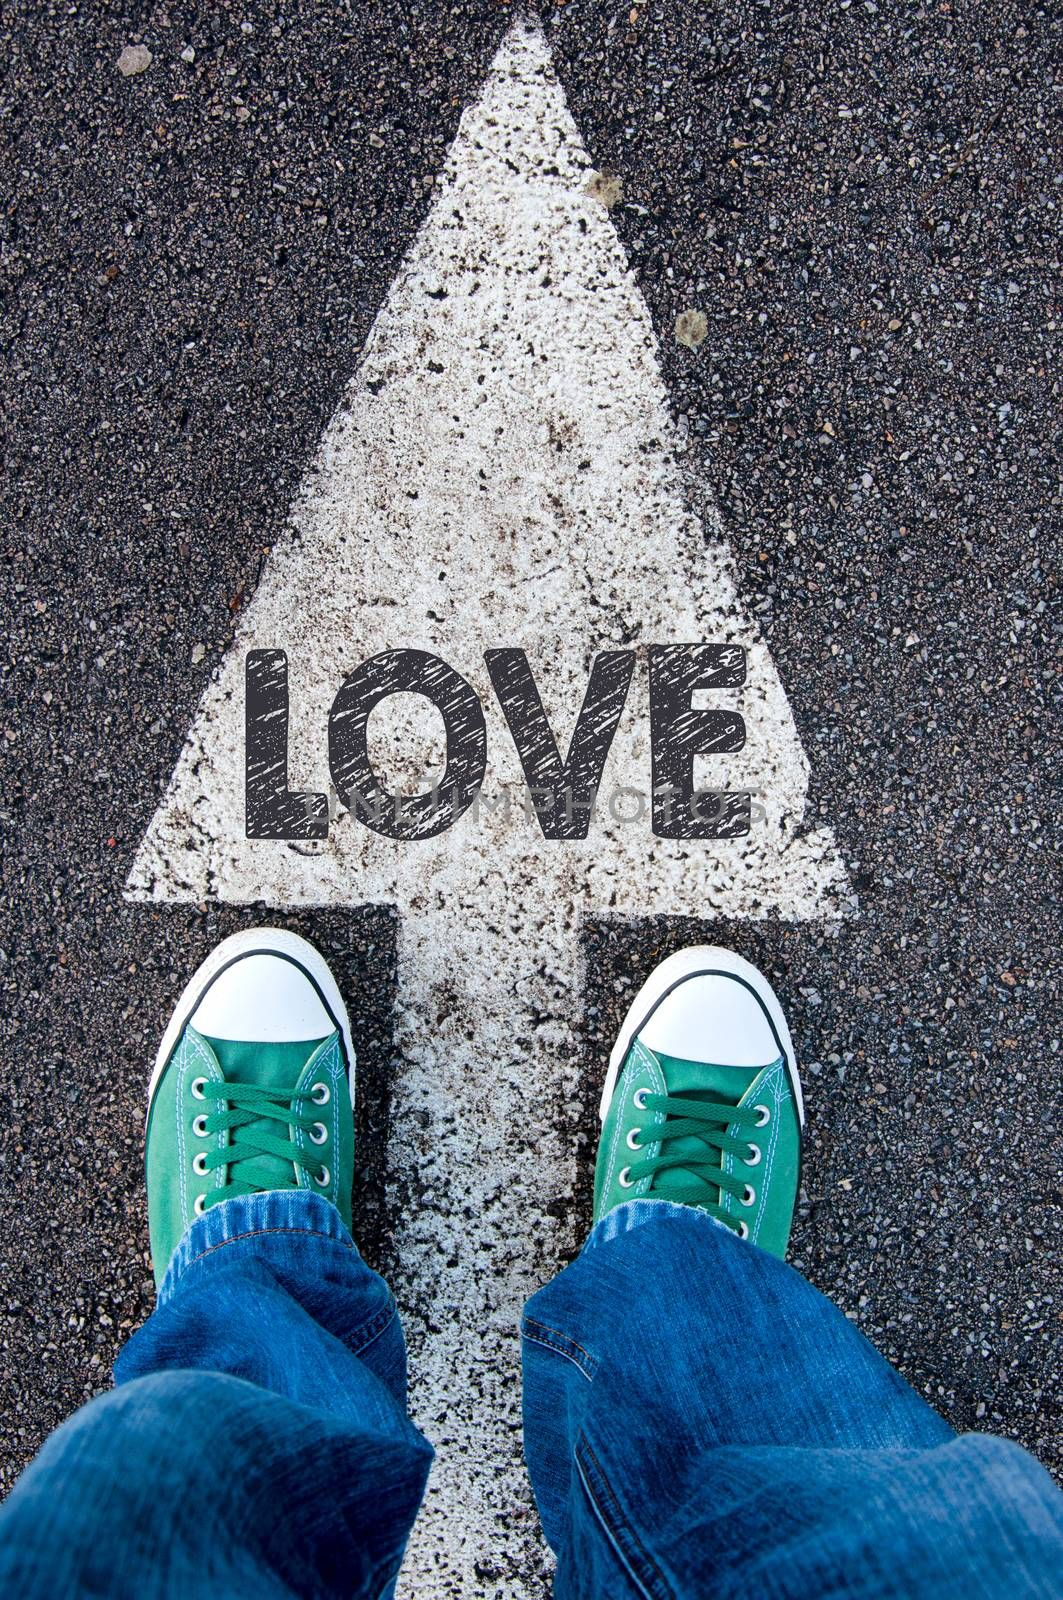 Green shoes standing on your love sign